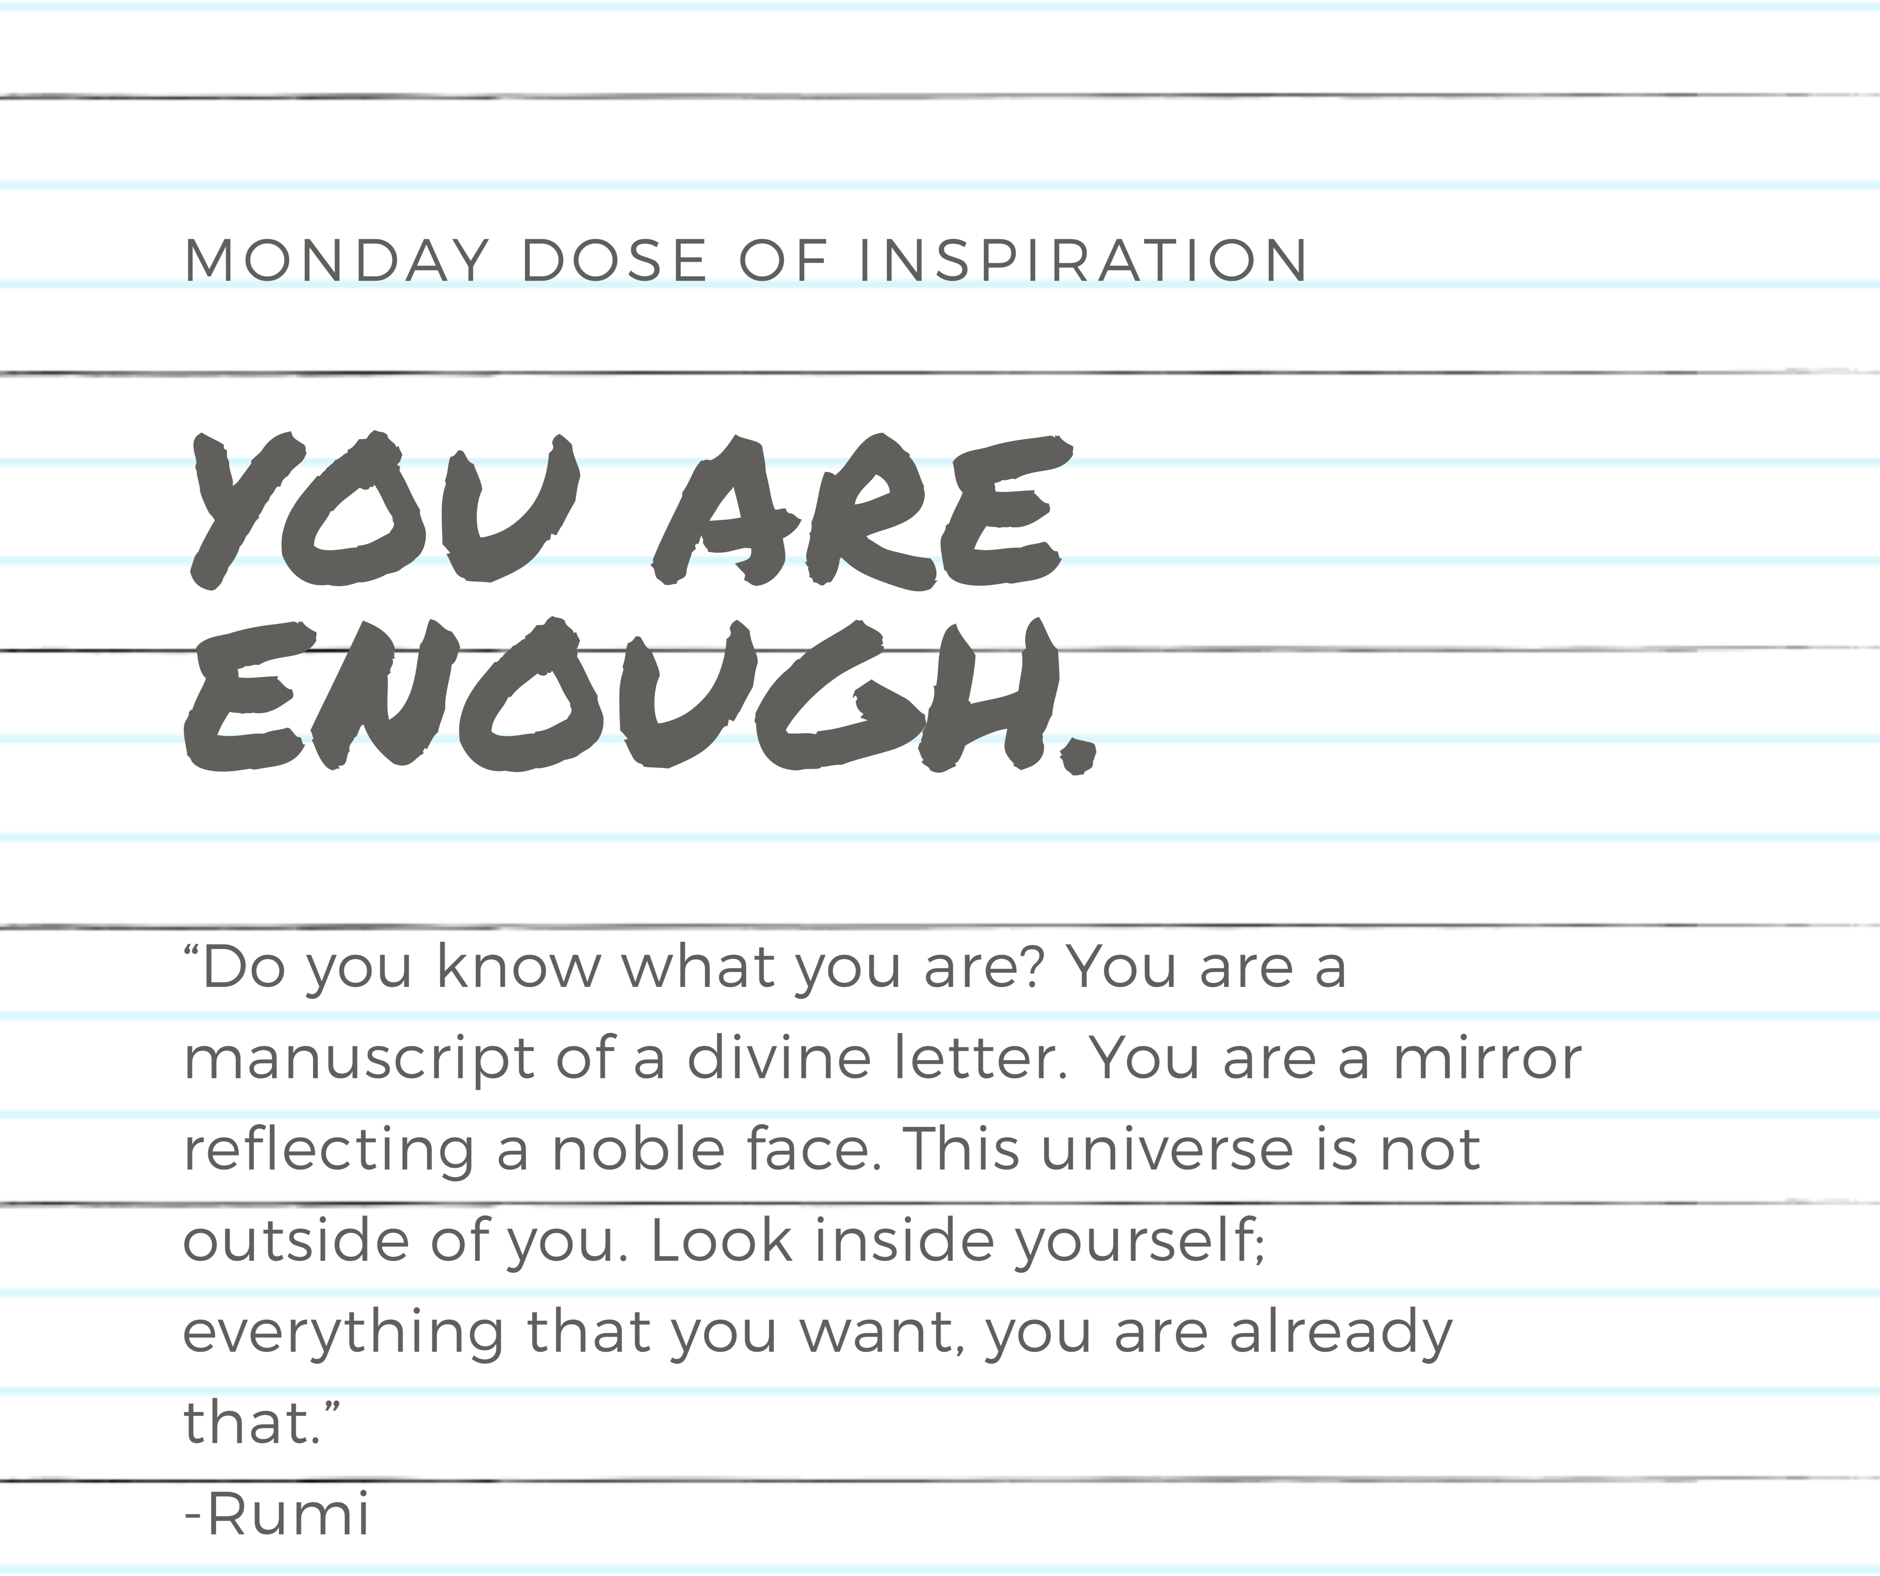 Monday Dose of Inspiration - You Are Enough